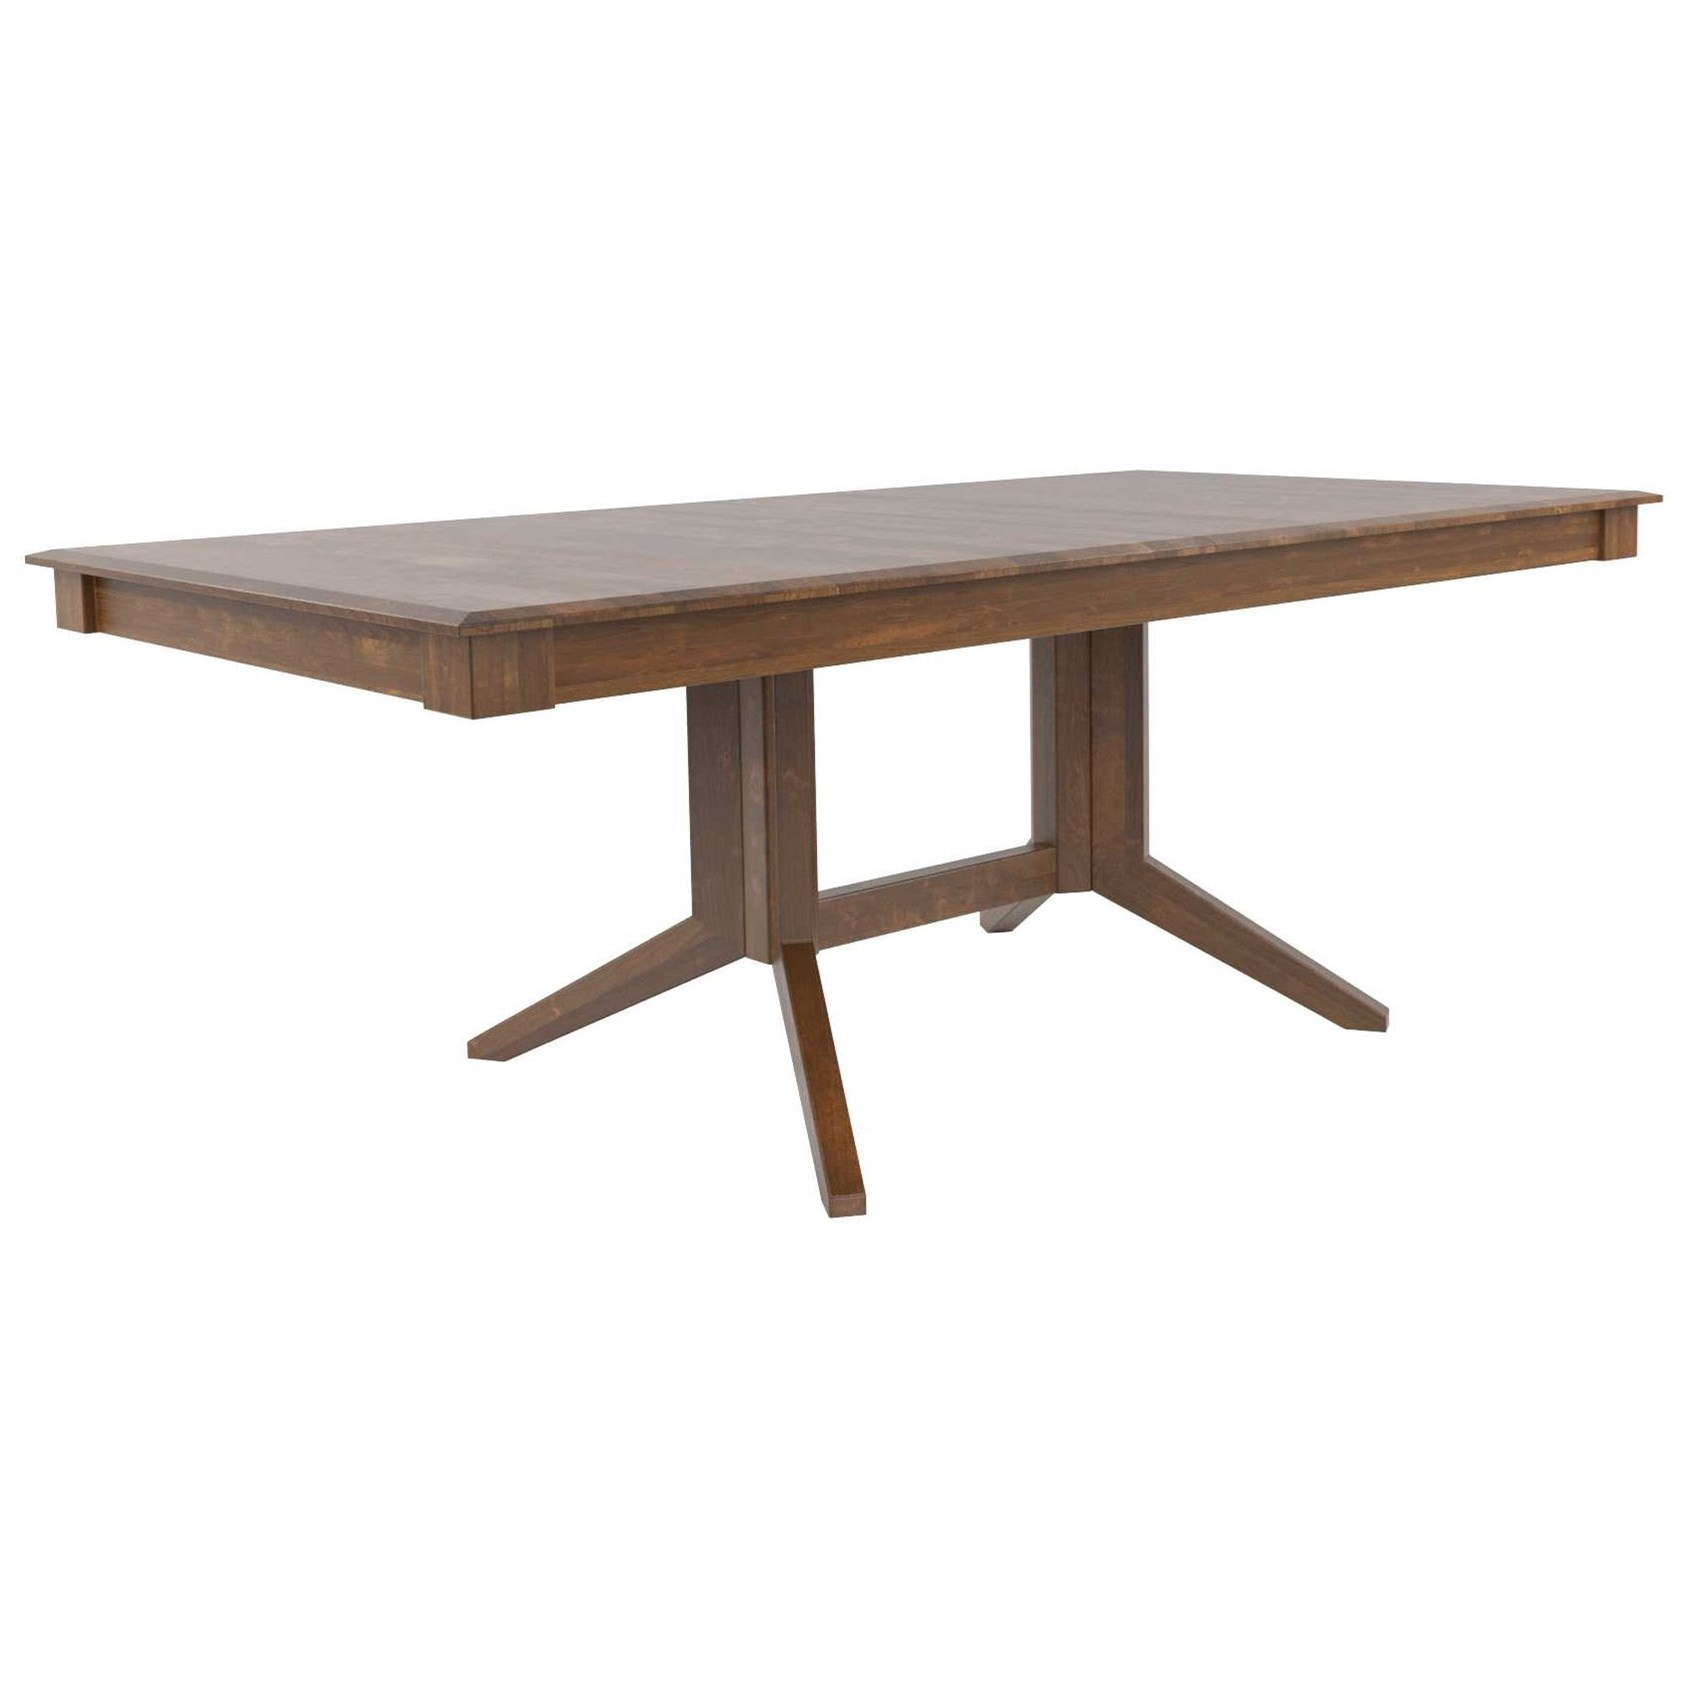 Core - Custom Dining Customizable Rectangular Dining Table by Canadel at Jordan's Home Furnishings